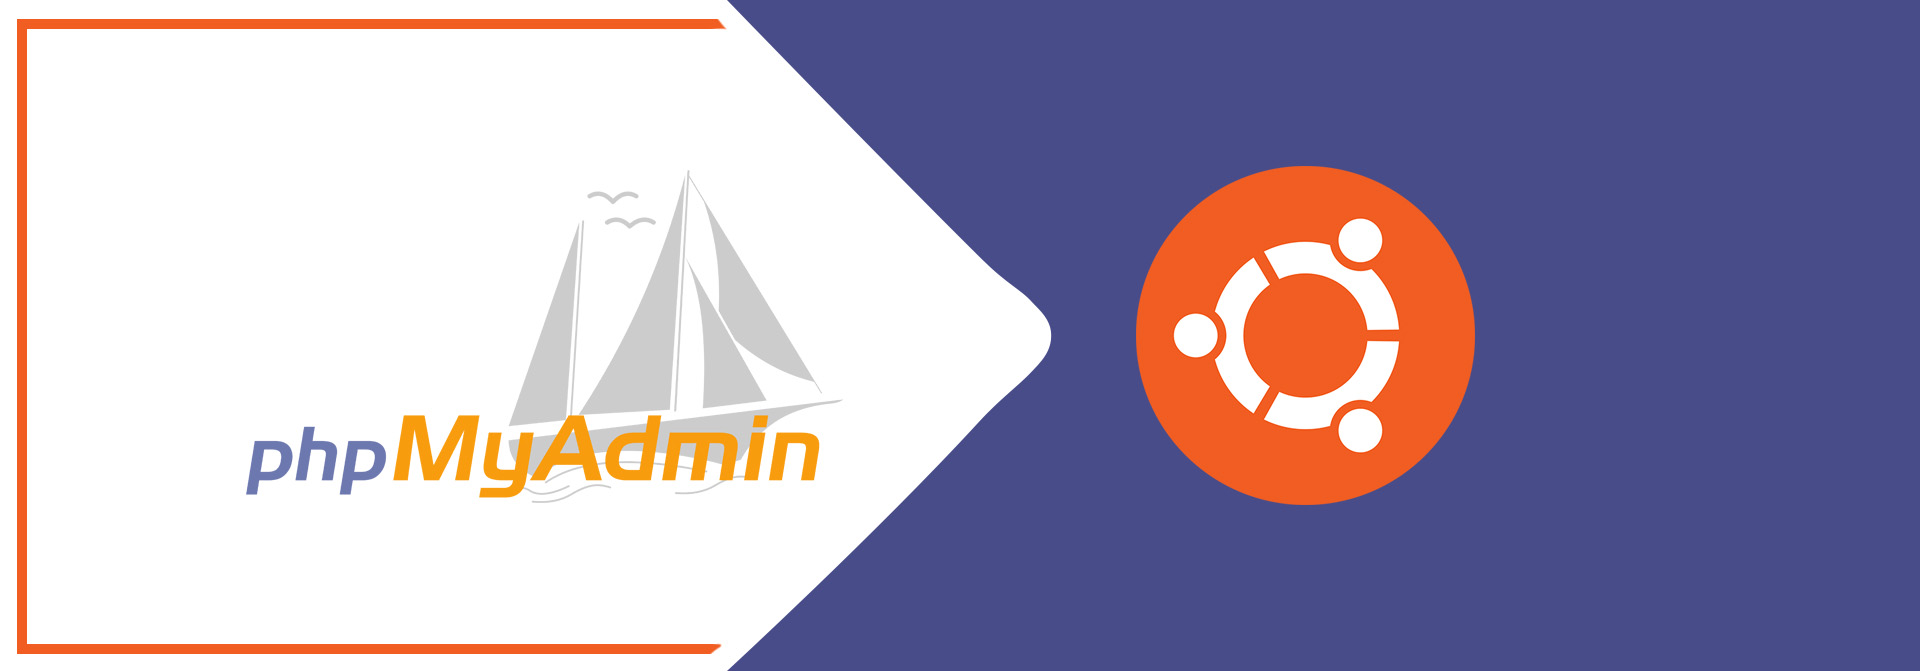 The Complete Guide To Install And Secure phpMyAdmin On Ubuntu 20.04 LTS